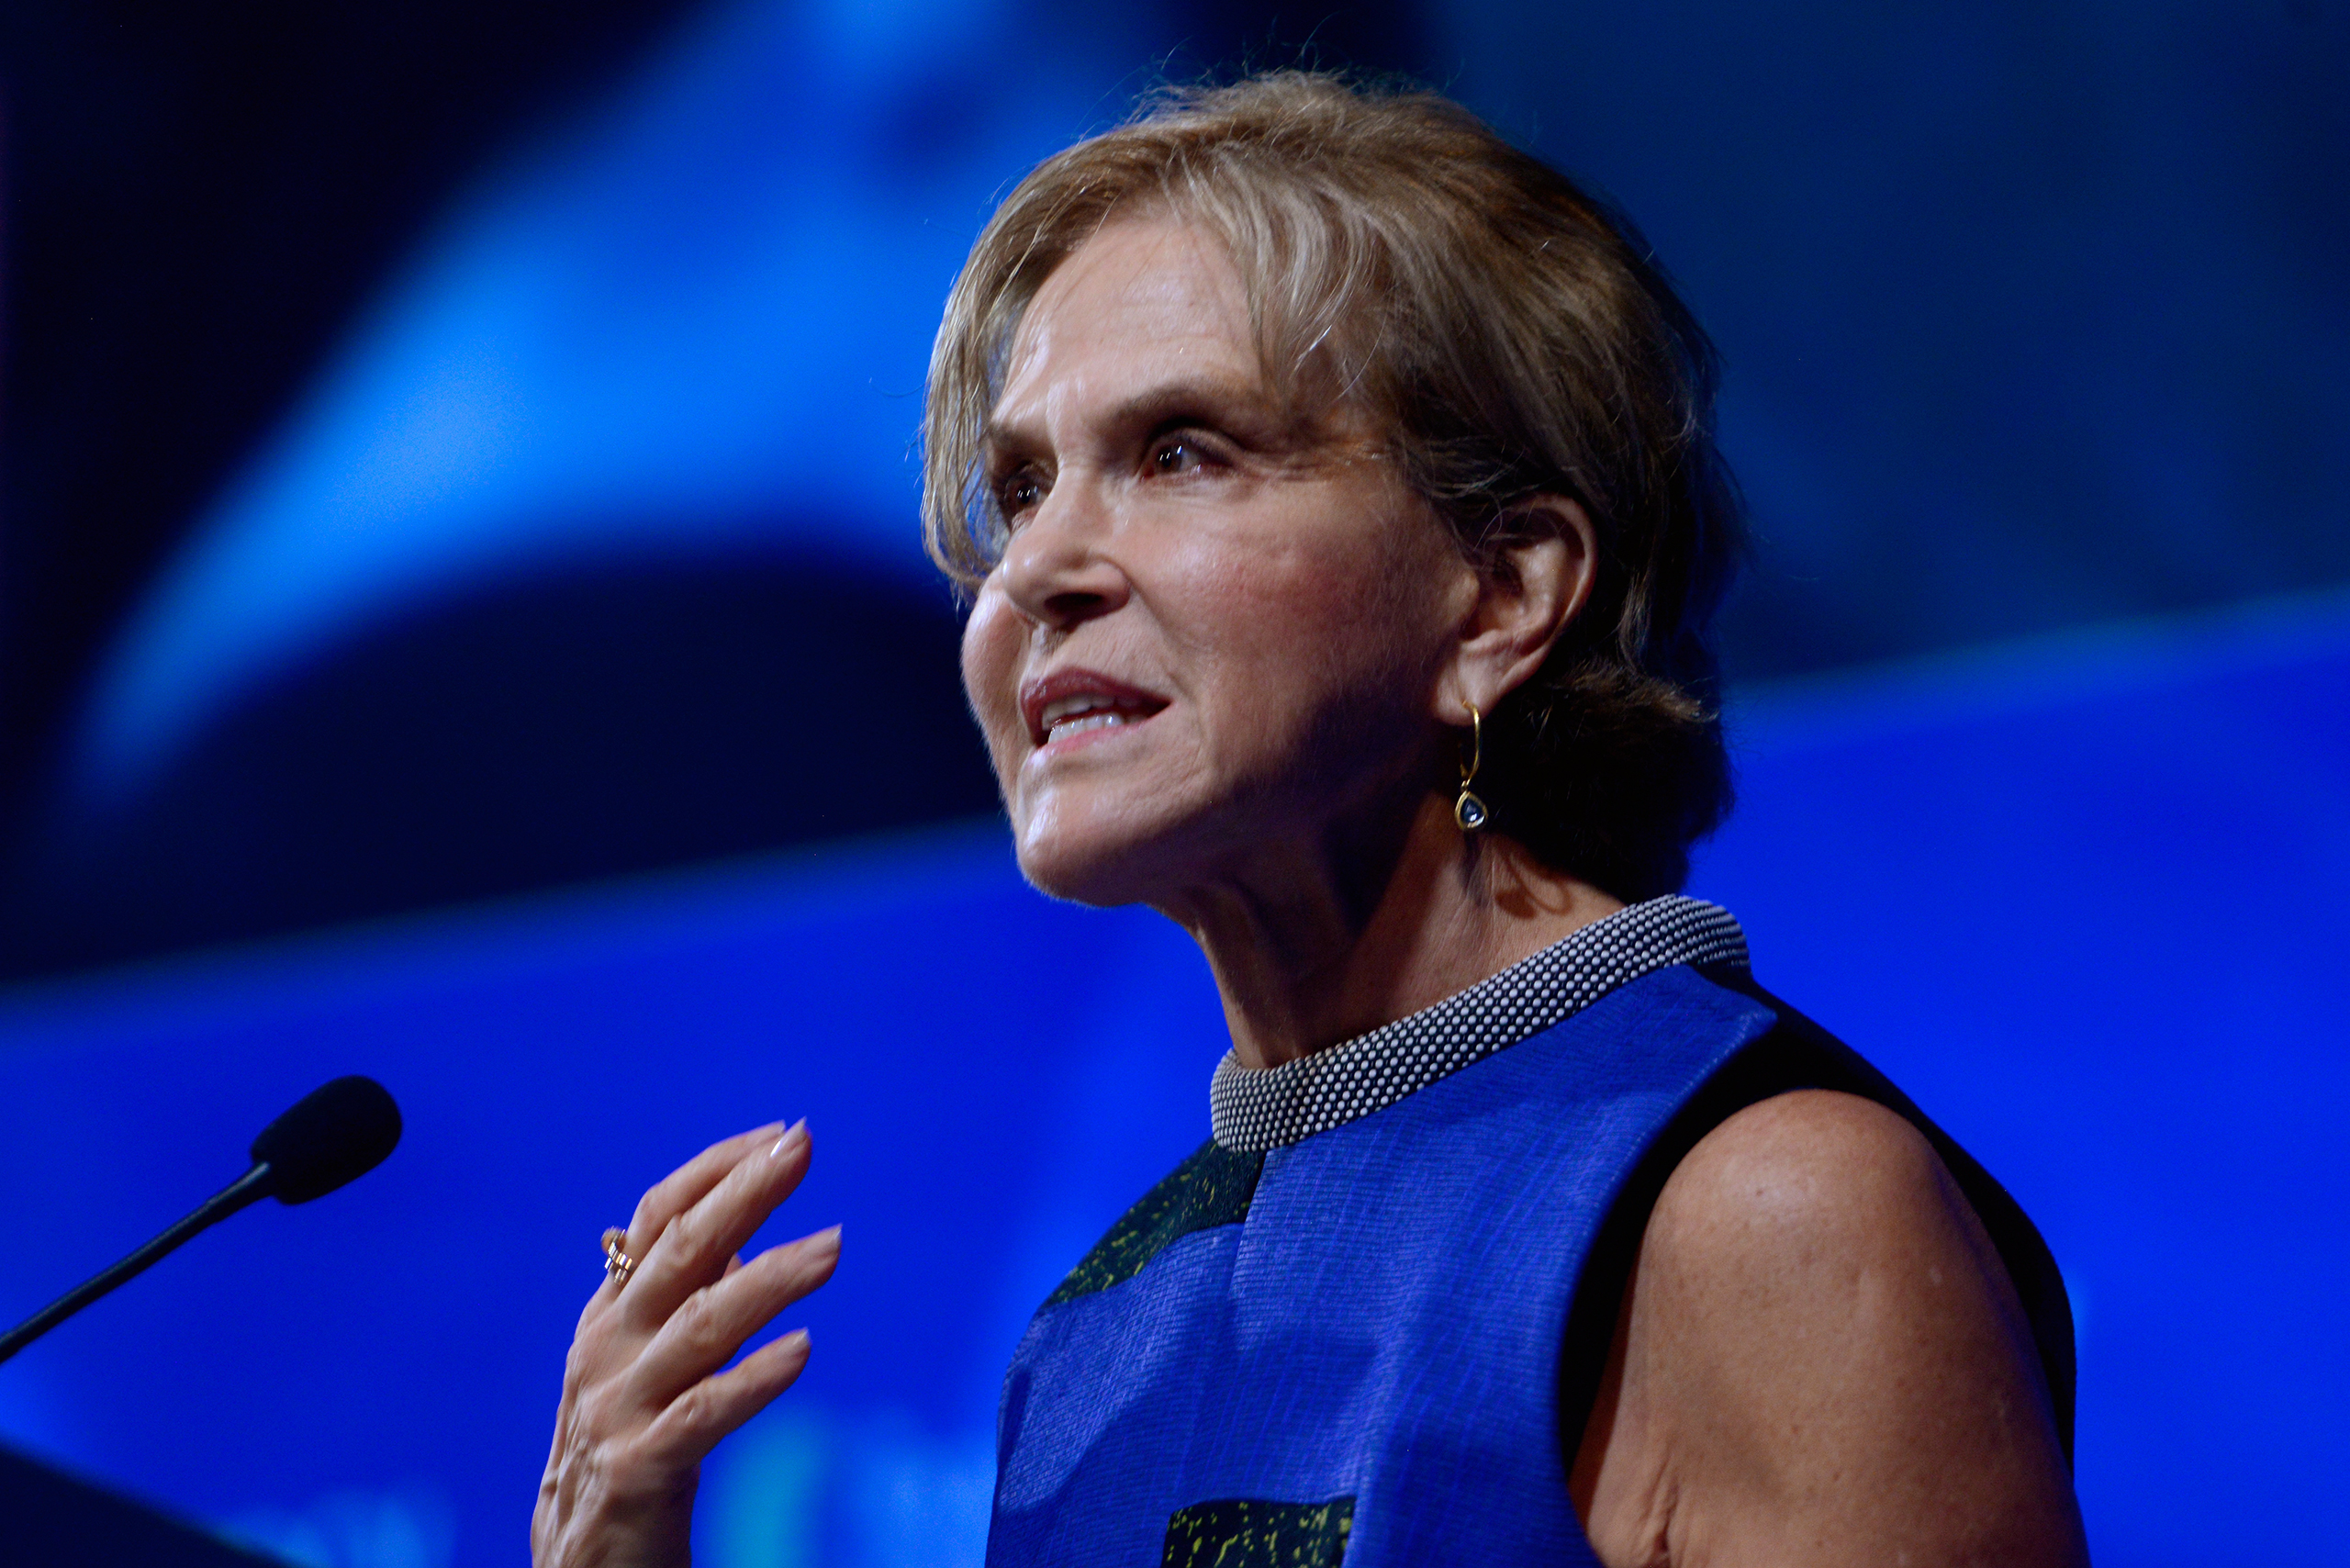 Judith Rodin, president of the Rockefeller Foundation, speaks during the 2015 Concordia Summit at Grand Hyatt New York on Oct. 1, 2015.